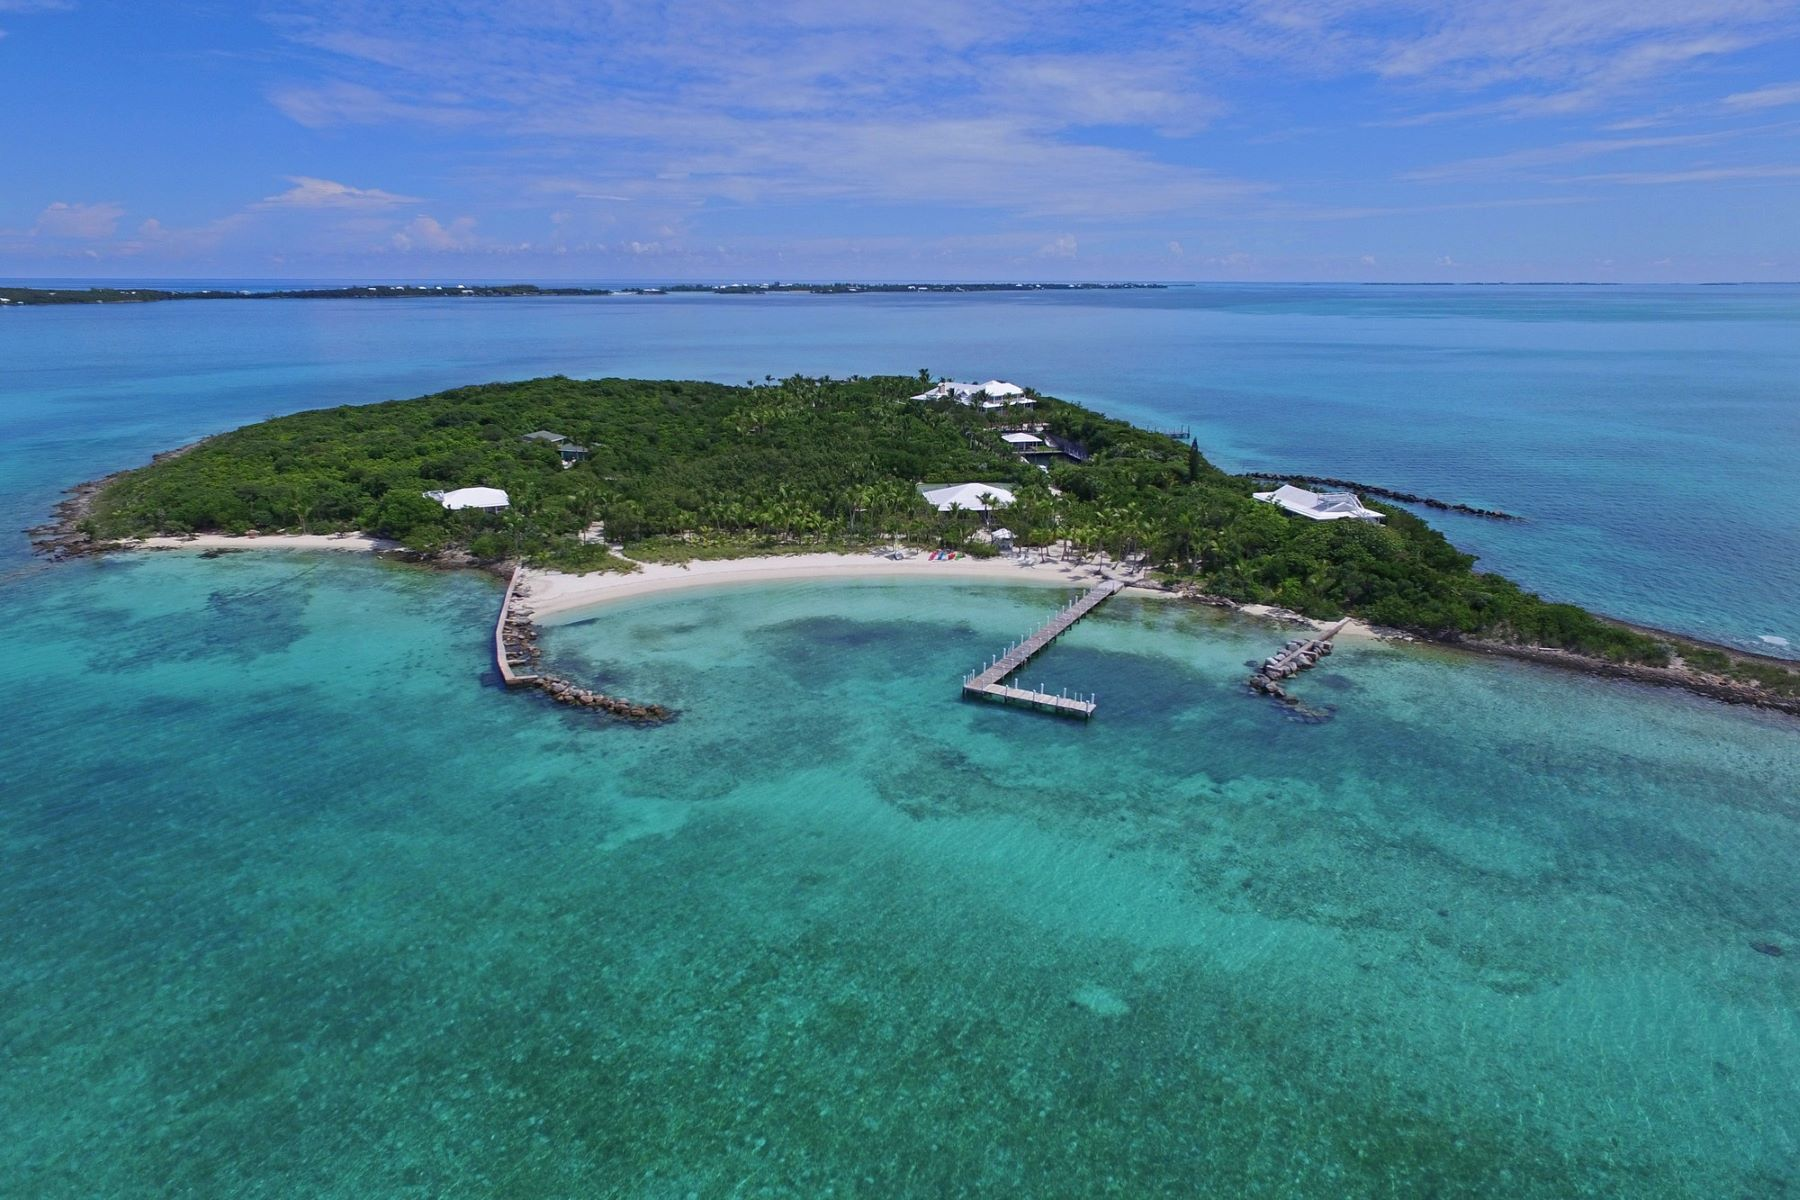 Private Island for Sale at Foot's Cay Guana Cay, Abaco Bahamas